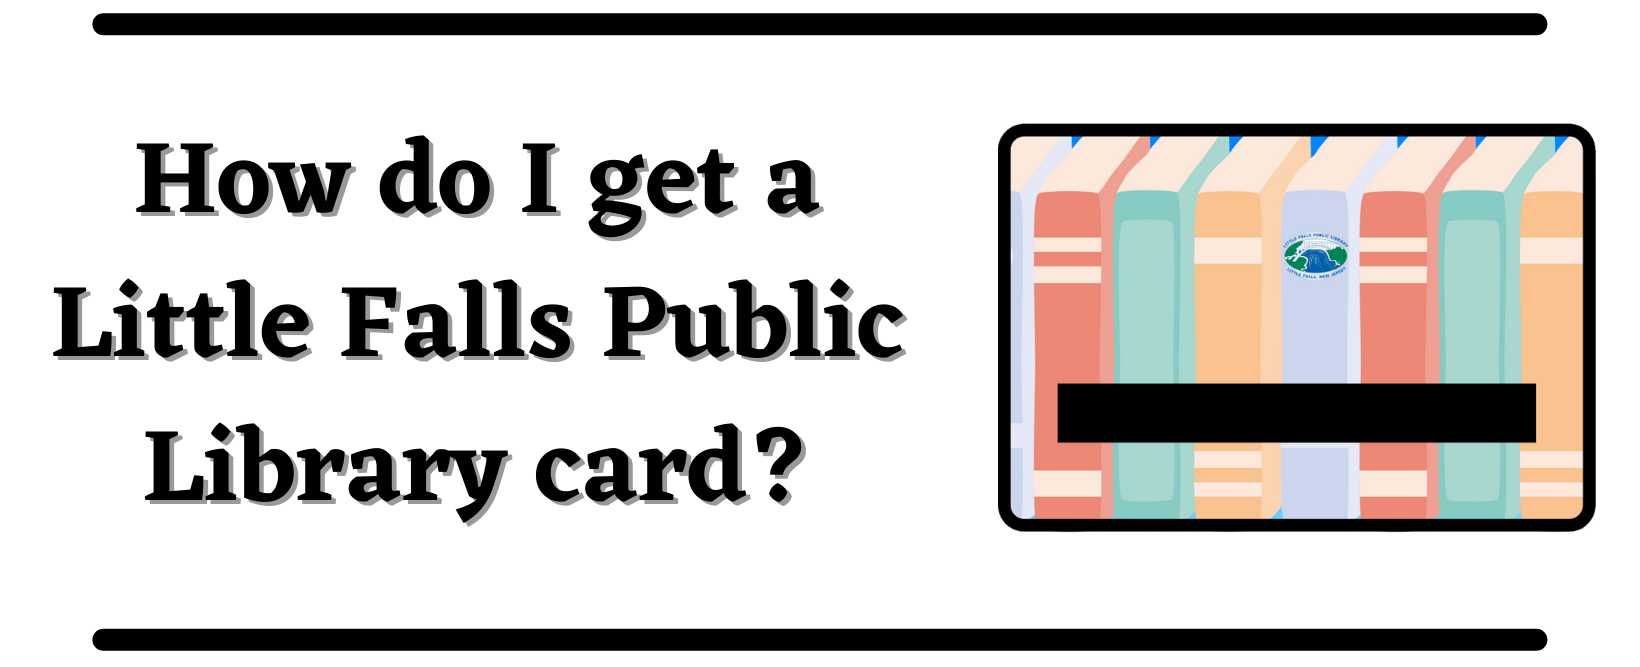 How do I get a Little Falls Library Card